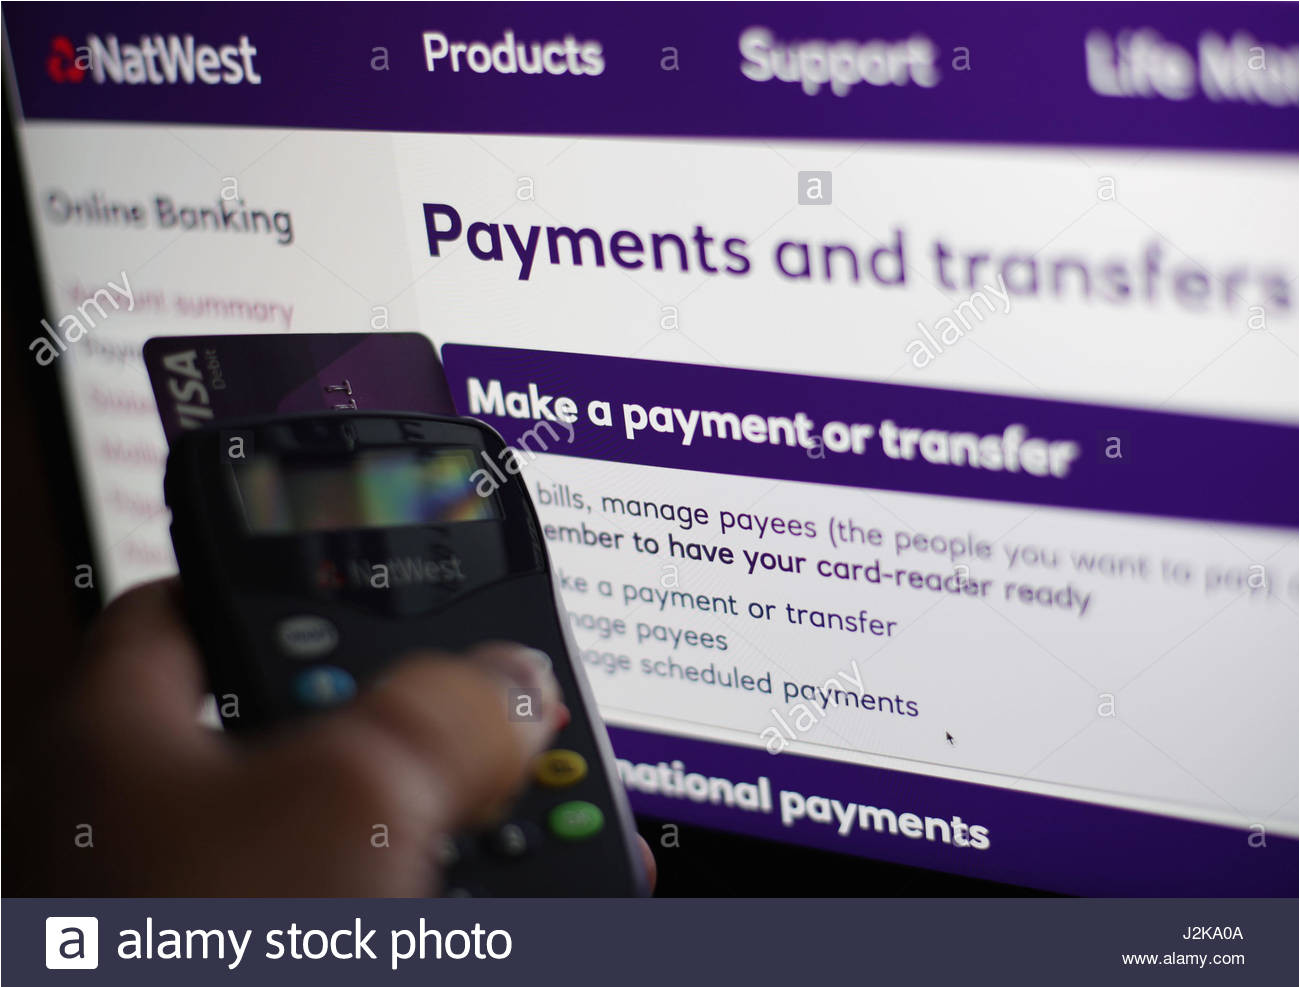 the natwest online banking website on a laptop in london as banking j2ka0a jpg